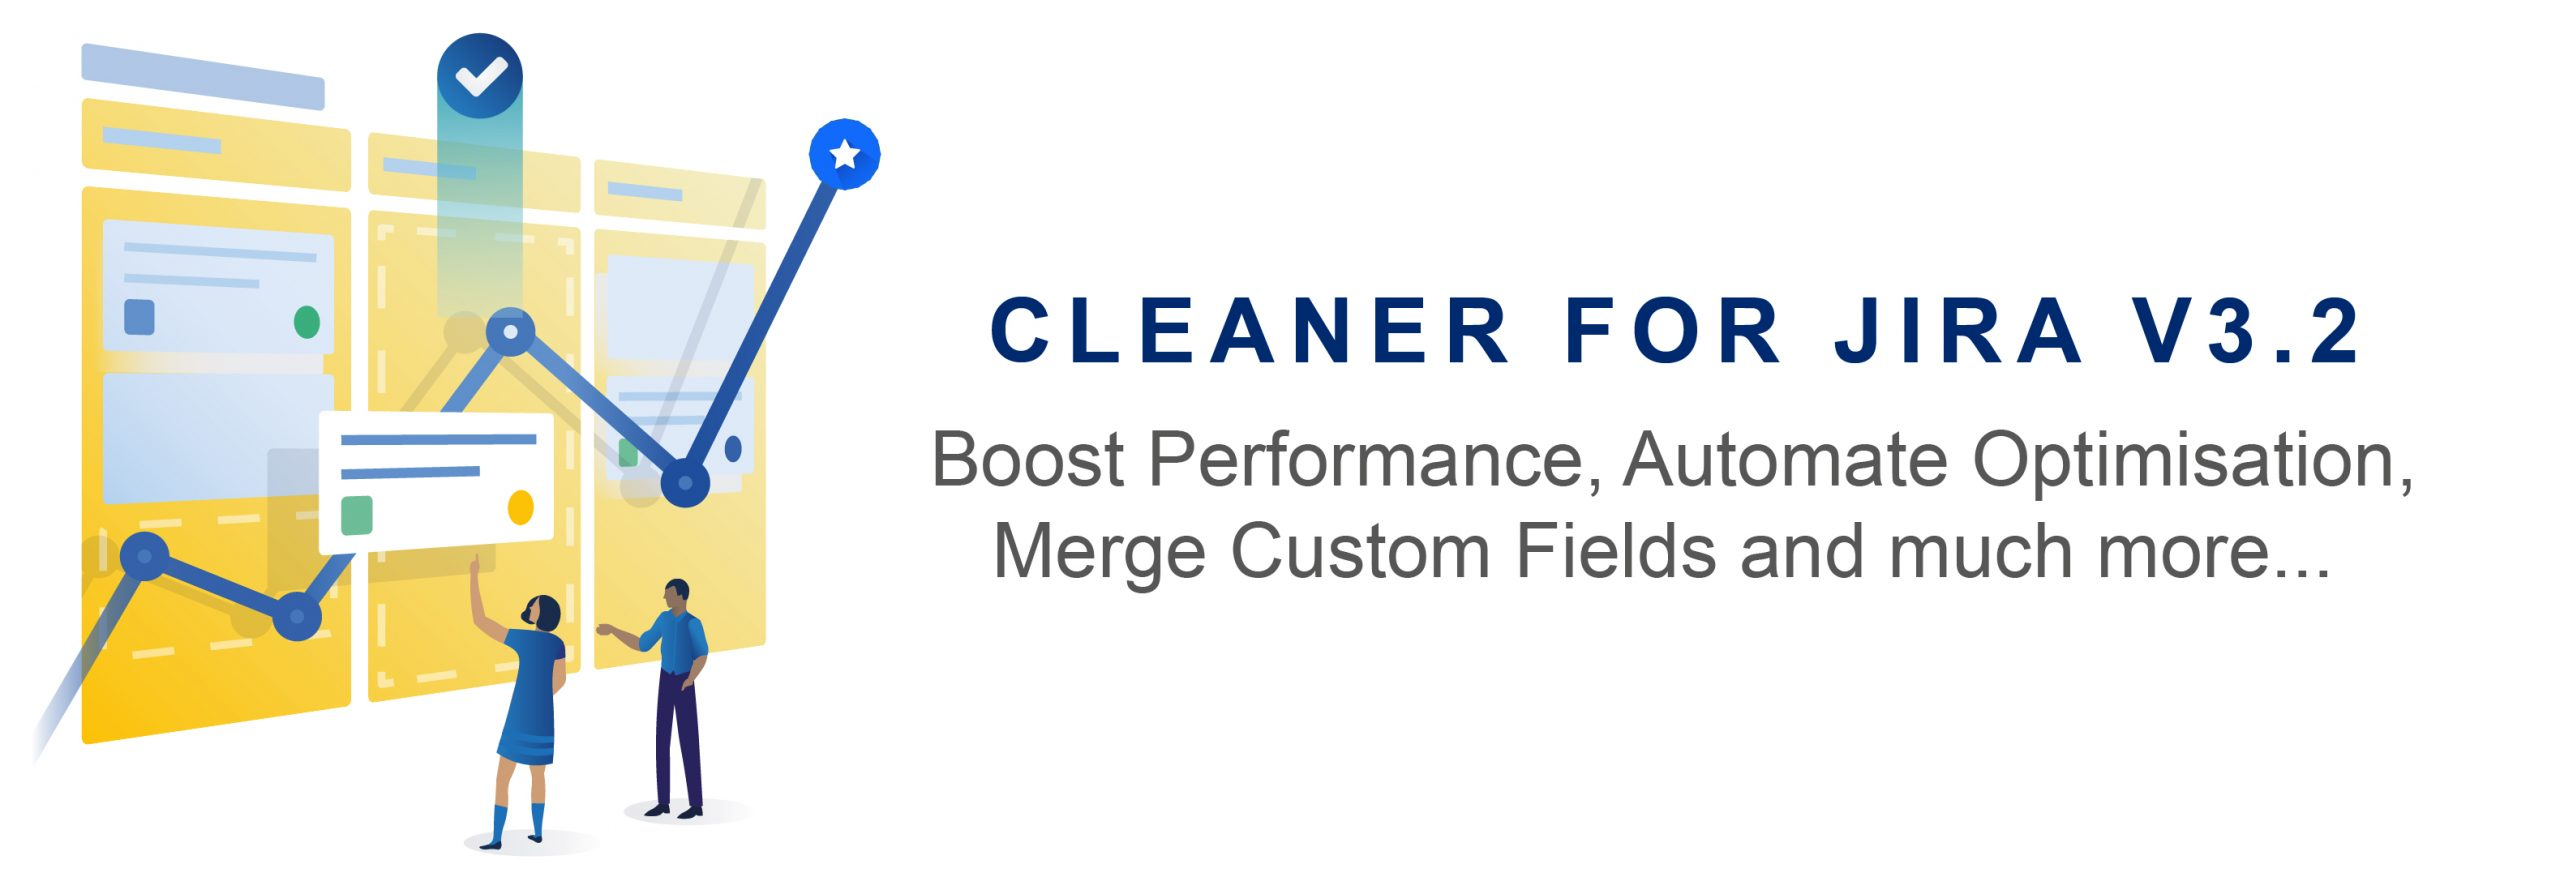 The Name is 3.2, Cleaner for Jira 3.2